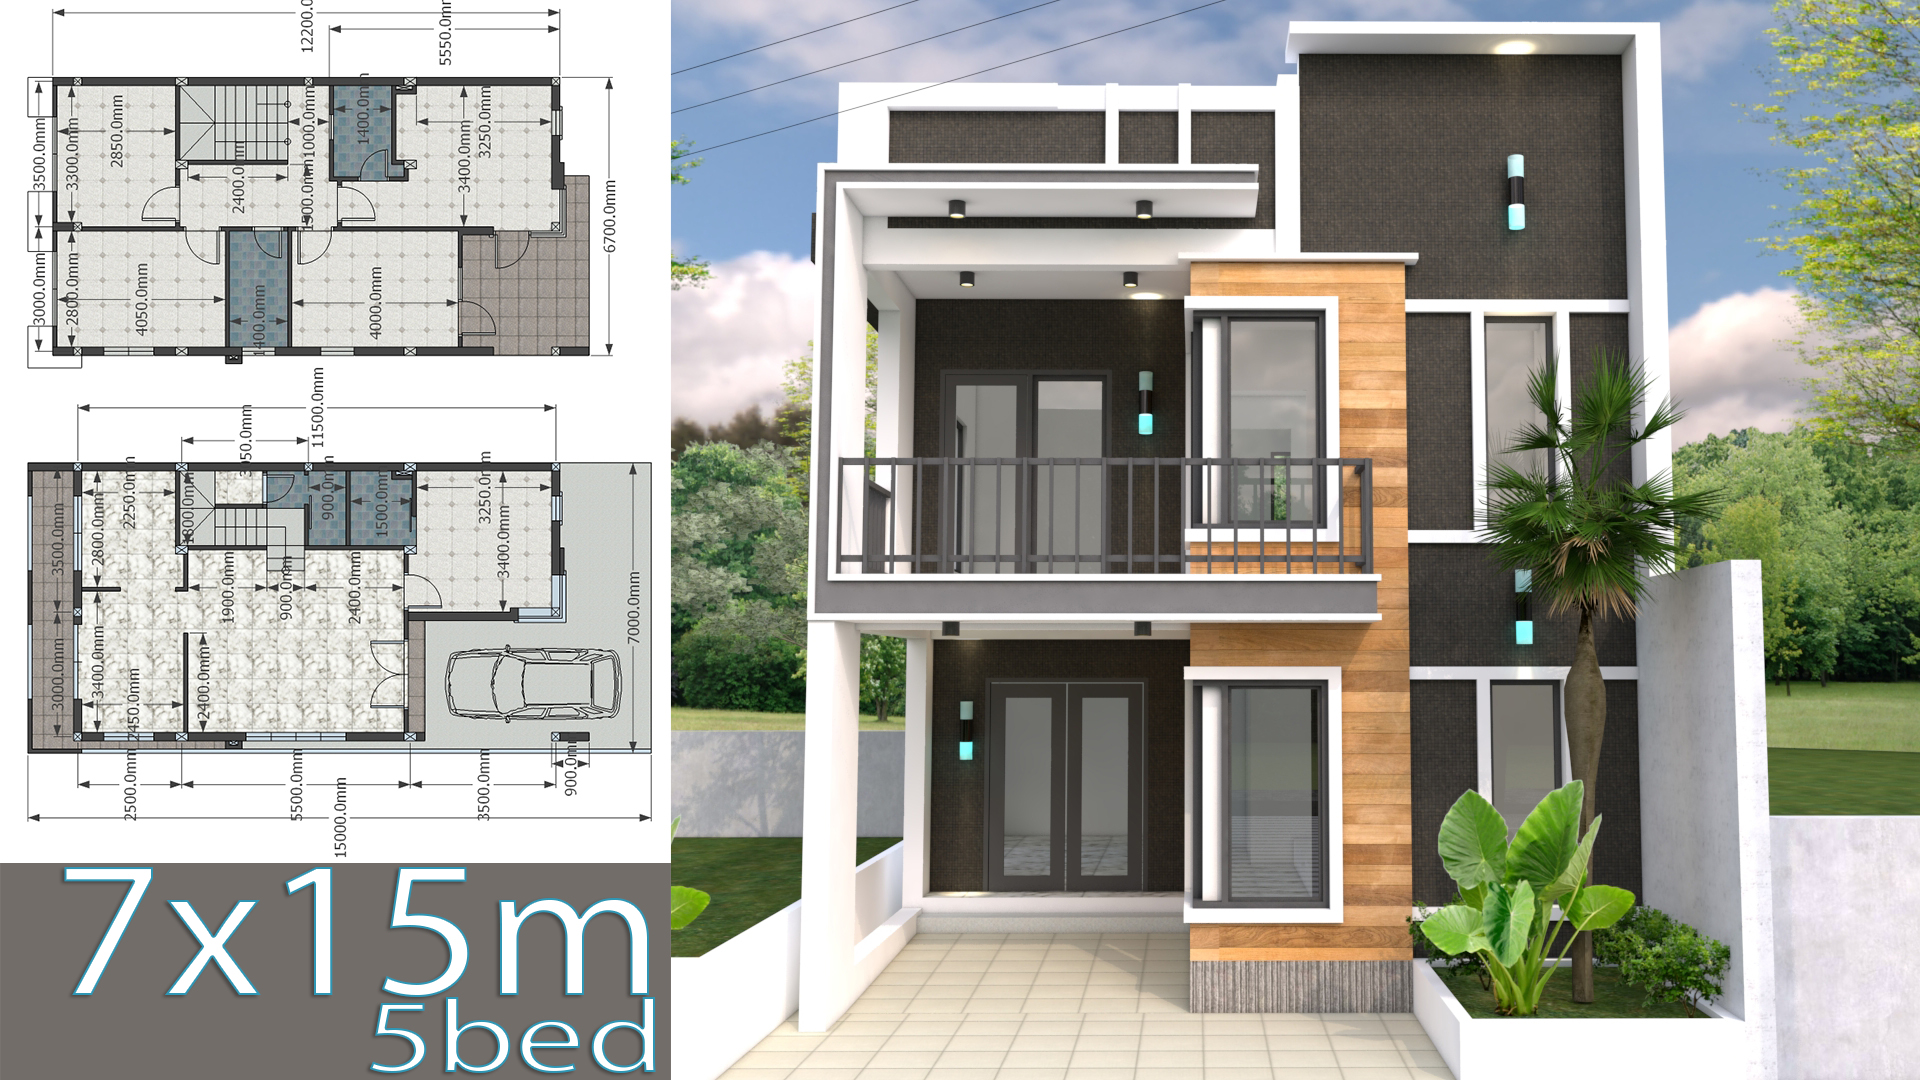 House Plans 7x15m With 4 Bedrooms Samhouseplans,Teal And Brown Color Combinations